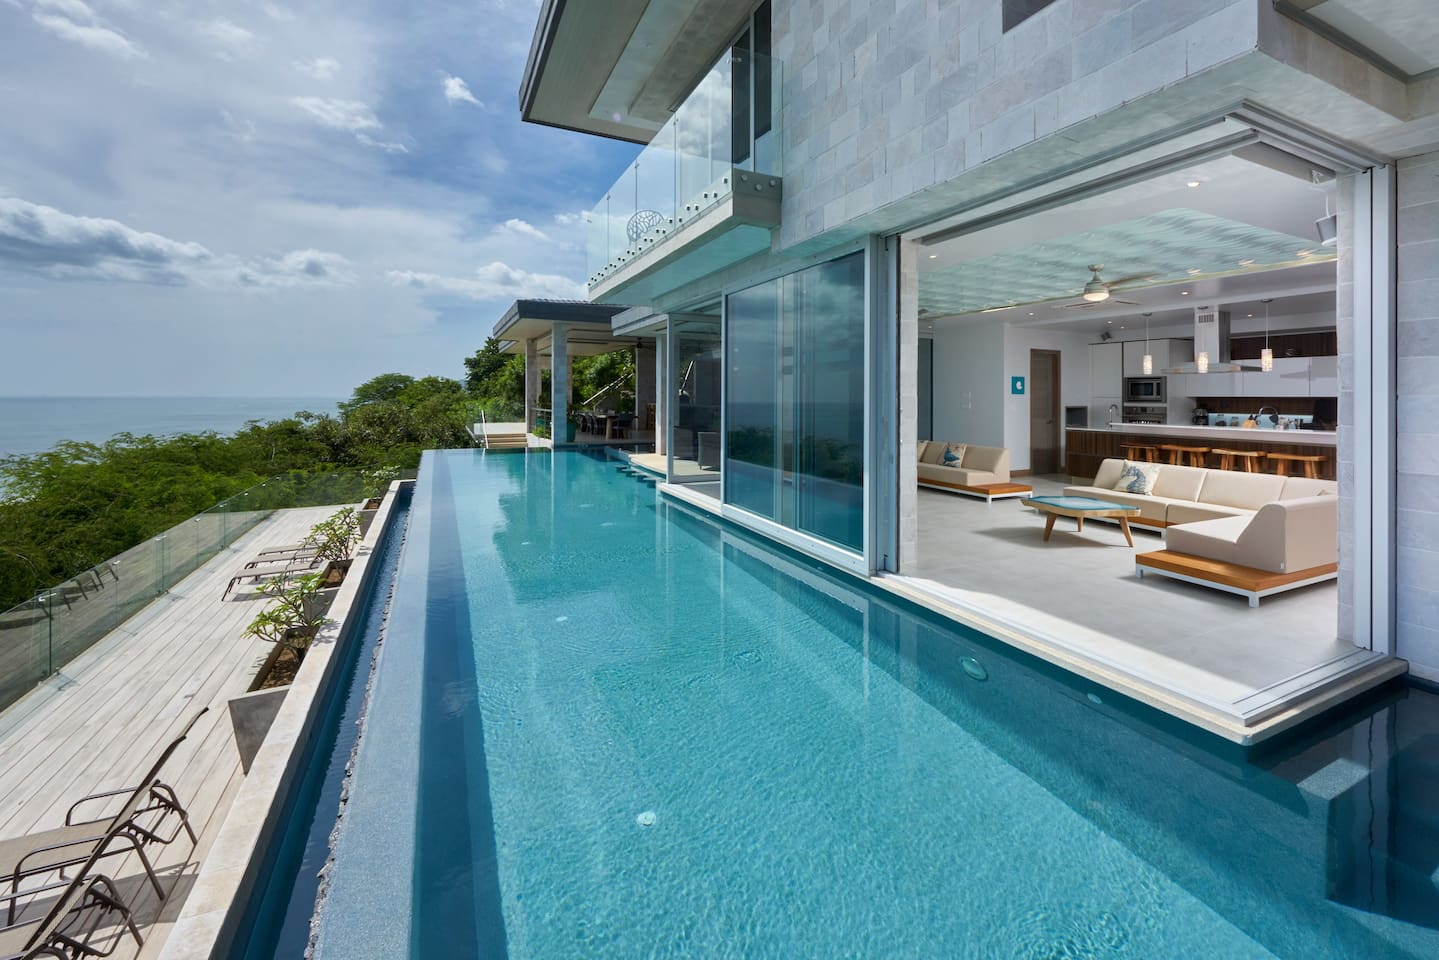 Huge pool and deck